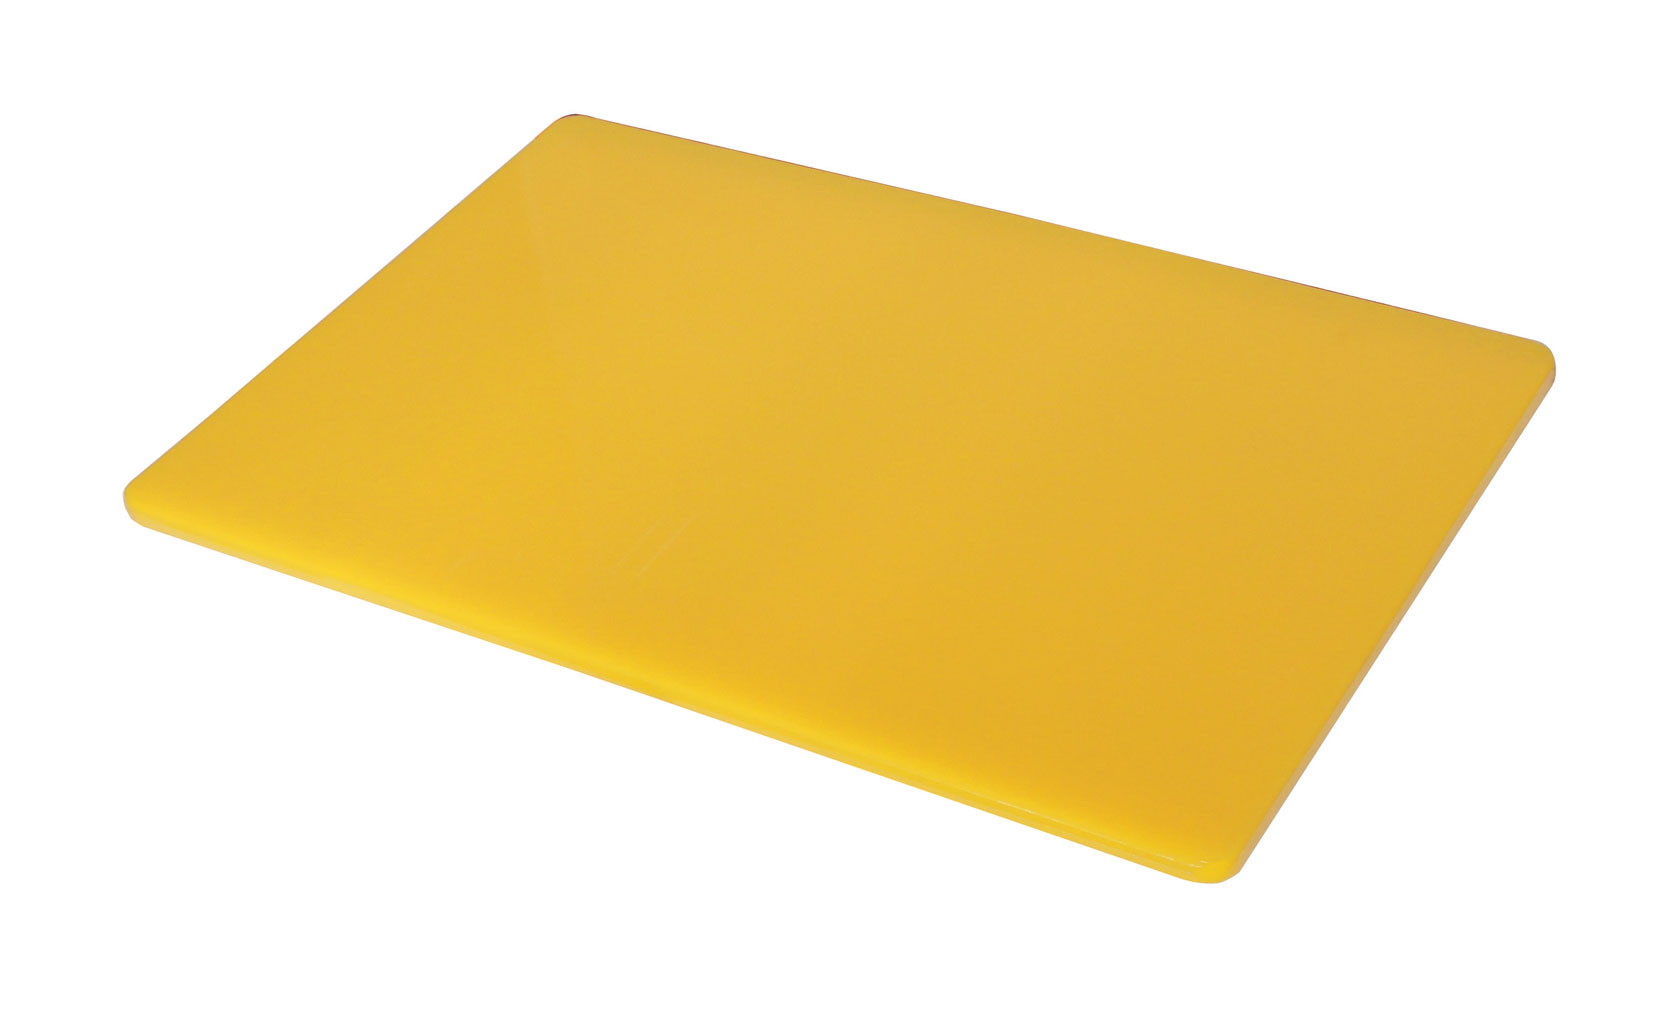 Yellow High Density Standard S ize Chopping Board 457 x 300 x 12.7 mm